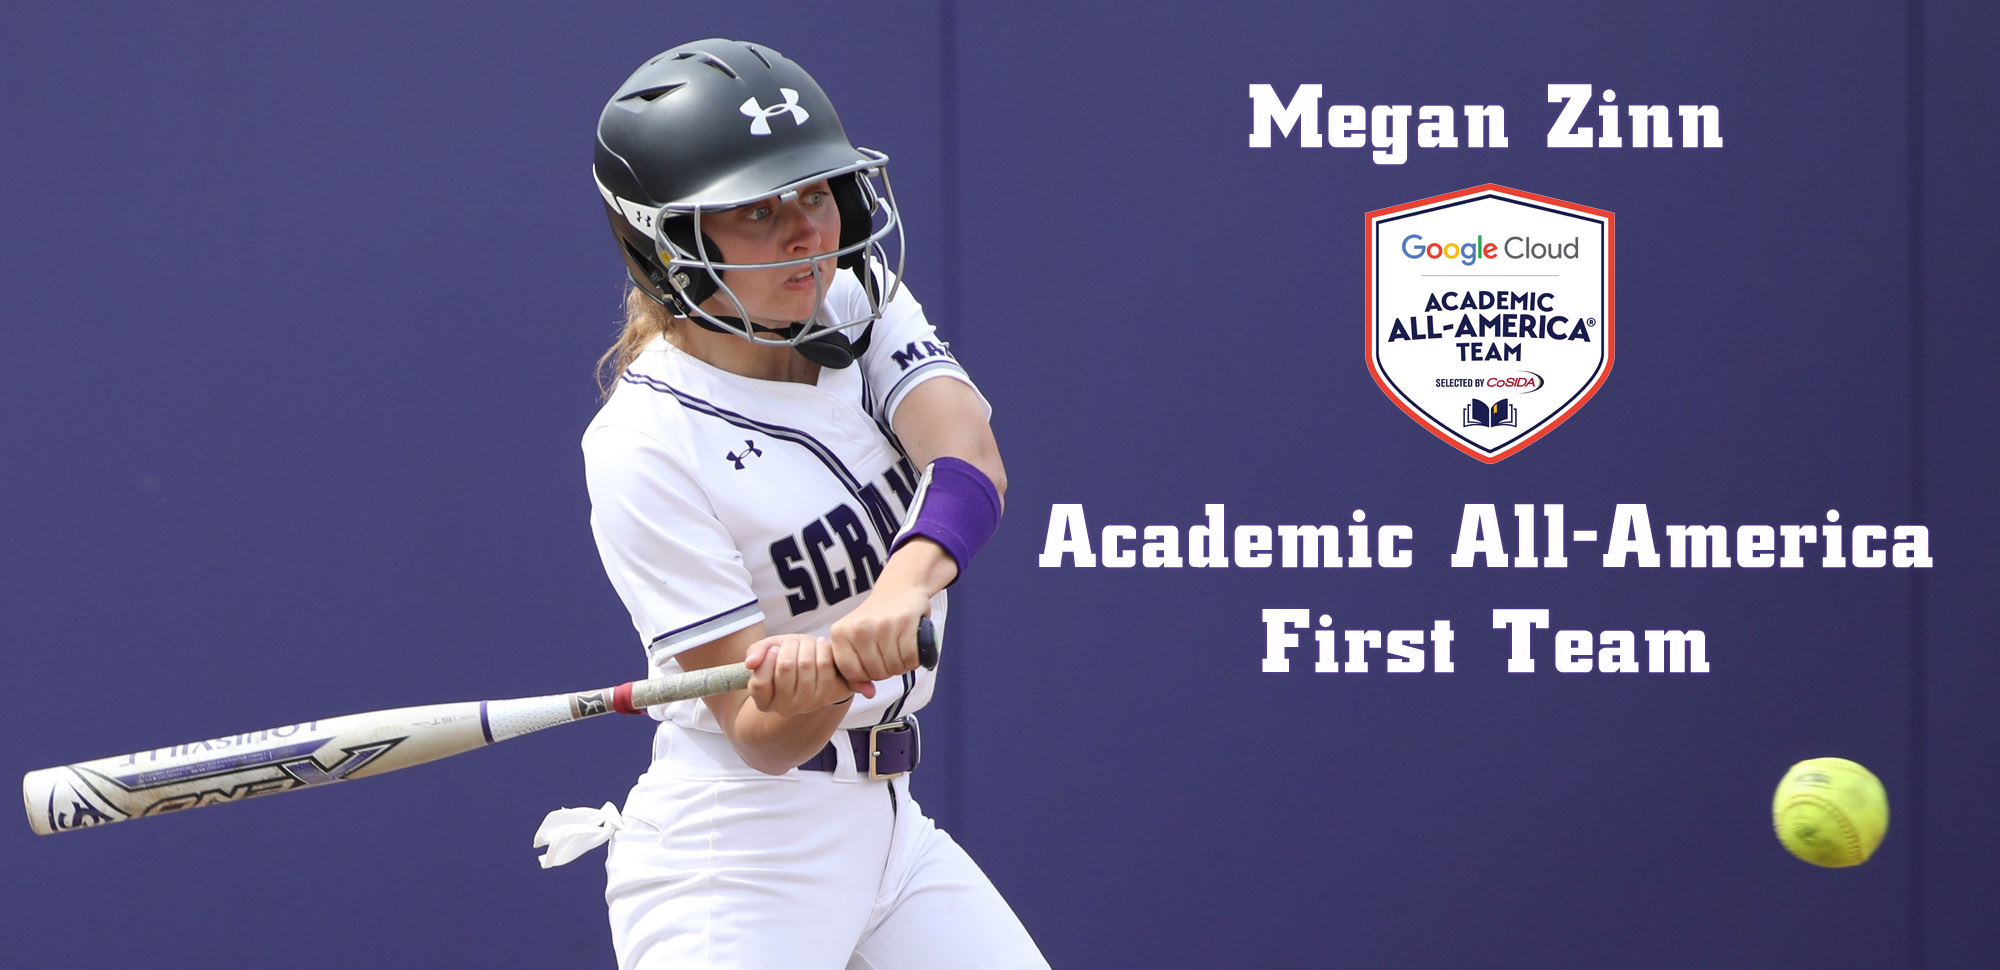 Junior outfielder Megan Zinn was named to the 2019 Google Cloud Academic All-America® Division III First Team as selected by CoSIDA. © Photo by Timothy R. Dougherty / doubleeaglephotography.com